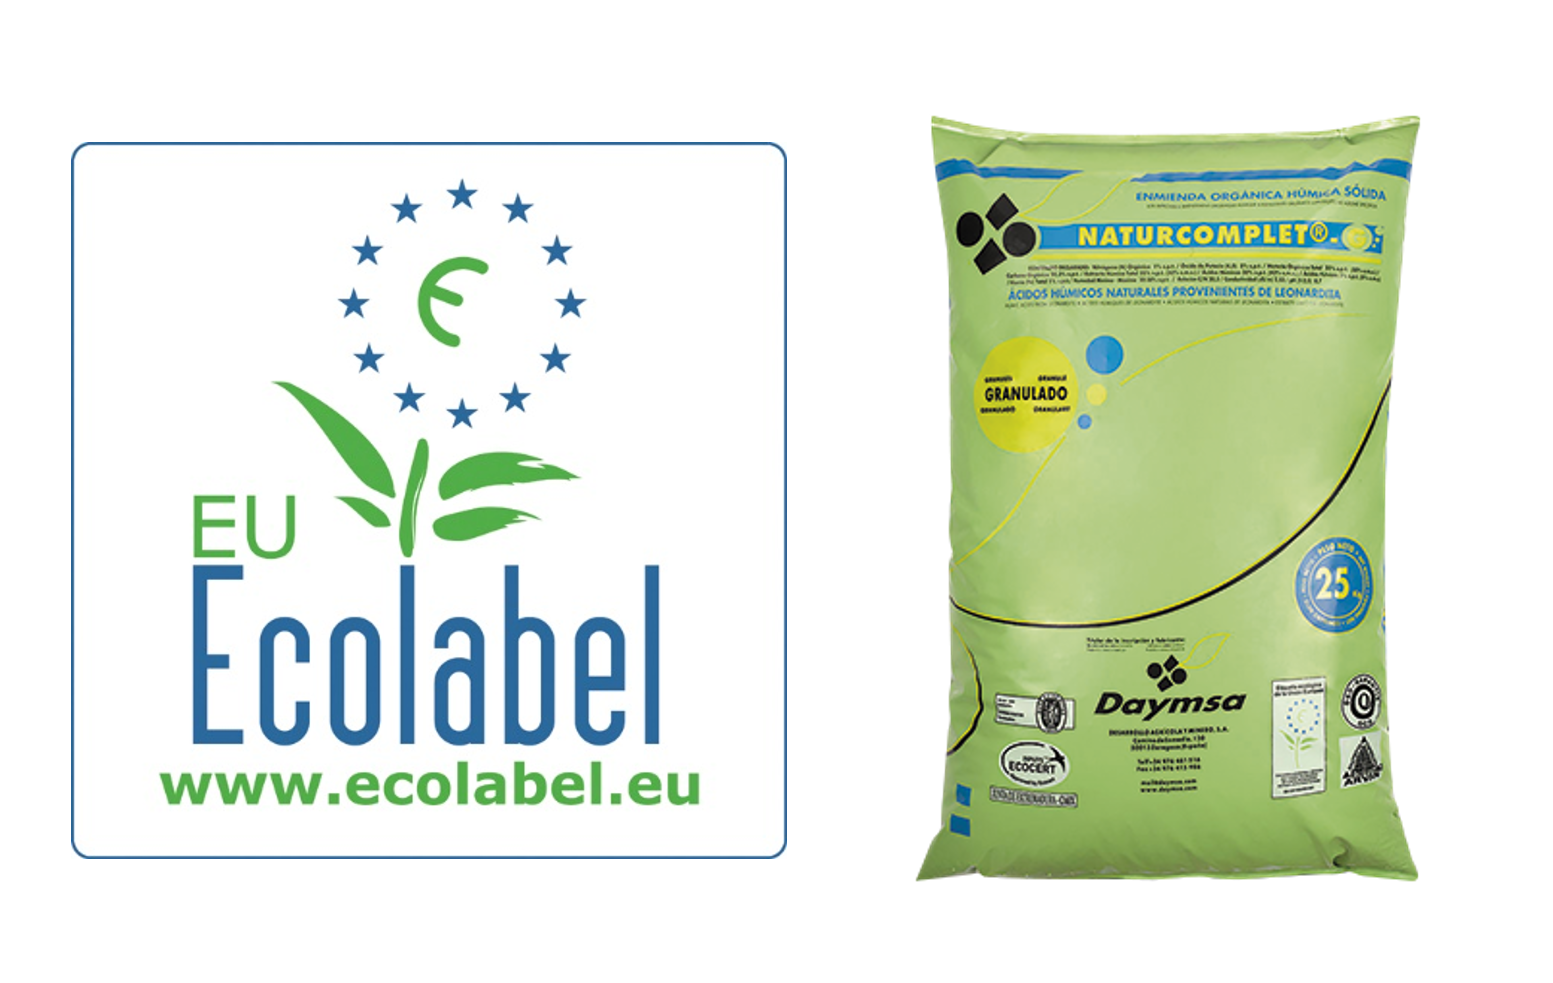 Daymsa obtains the renewal of Ecolabel organic certificationfor Naturcomplet®G